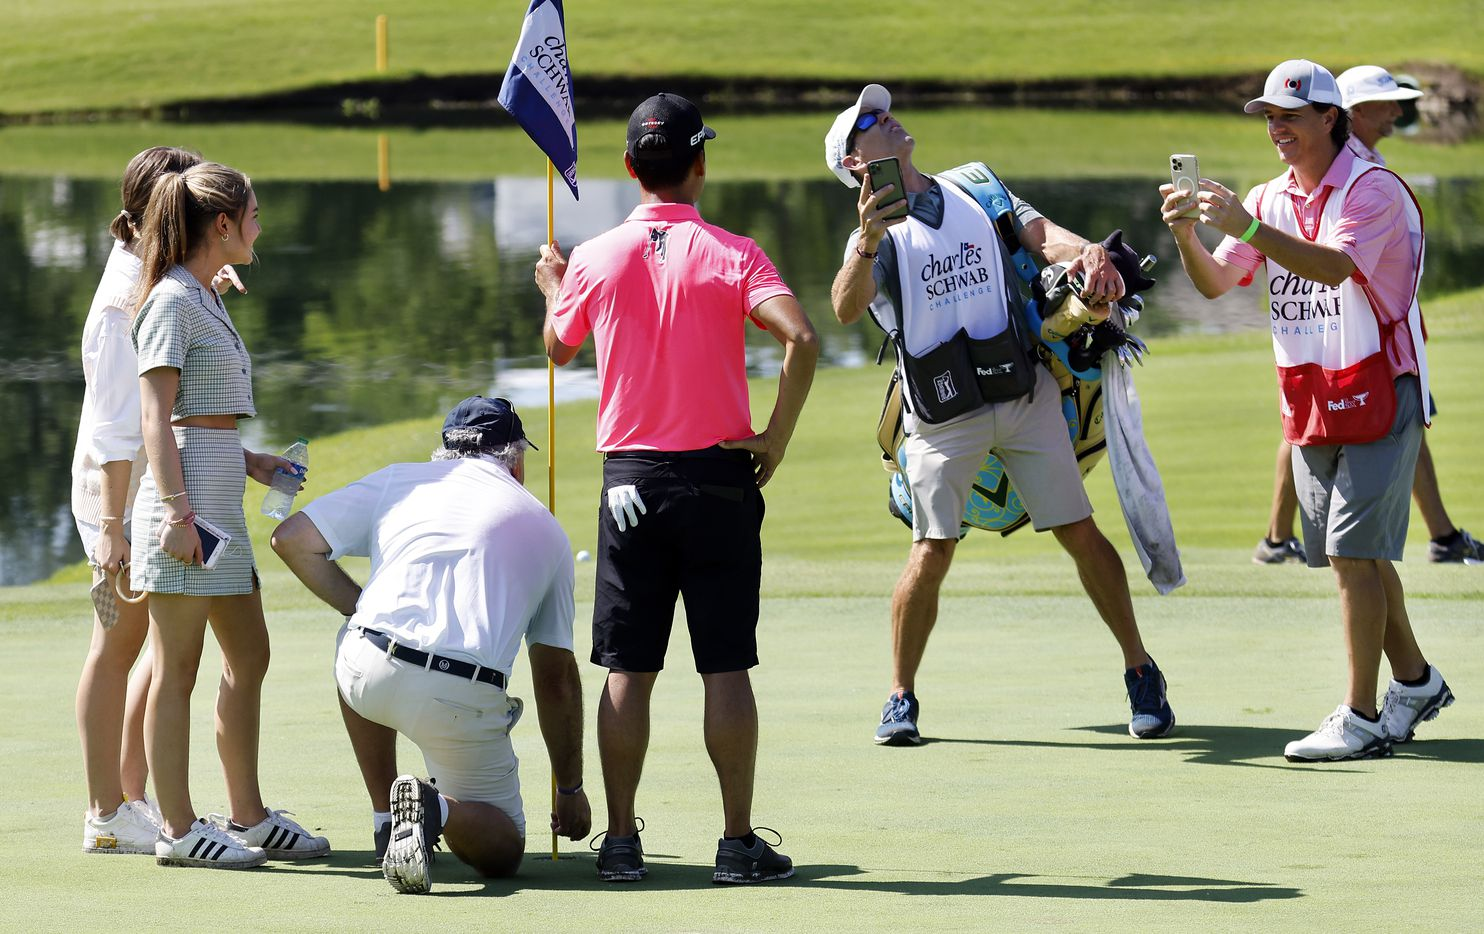 Golfer Kevin Na (pink shirt) poses for photos with playing partner Mitchell Parks (kneeling) after Parks hit a hole-in-one on No. 17 during the Charles Schwab Challenge Colonial Pro-Am at the Colonial Country Club in Fort Worth, Wednesday, May 26, 2021. Na won the tournament in 2019. (Tom Fox/The Dallas Morning News)